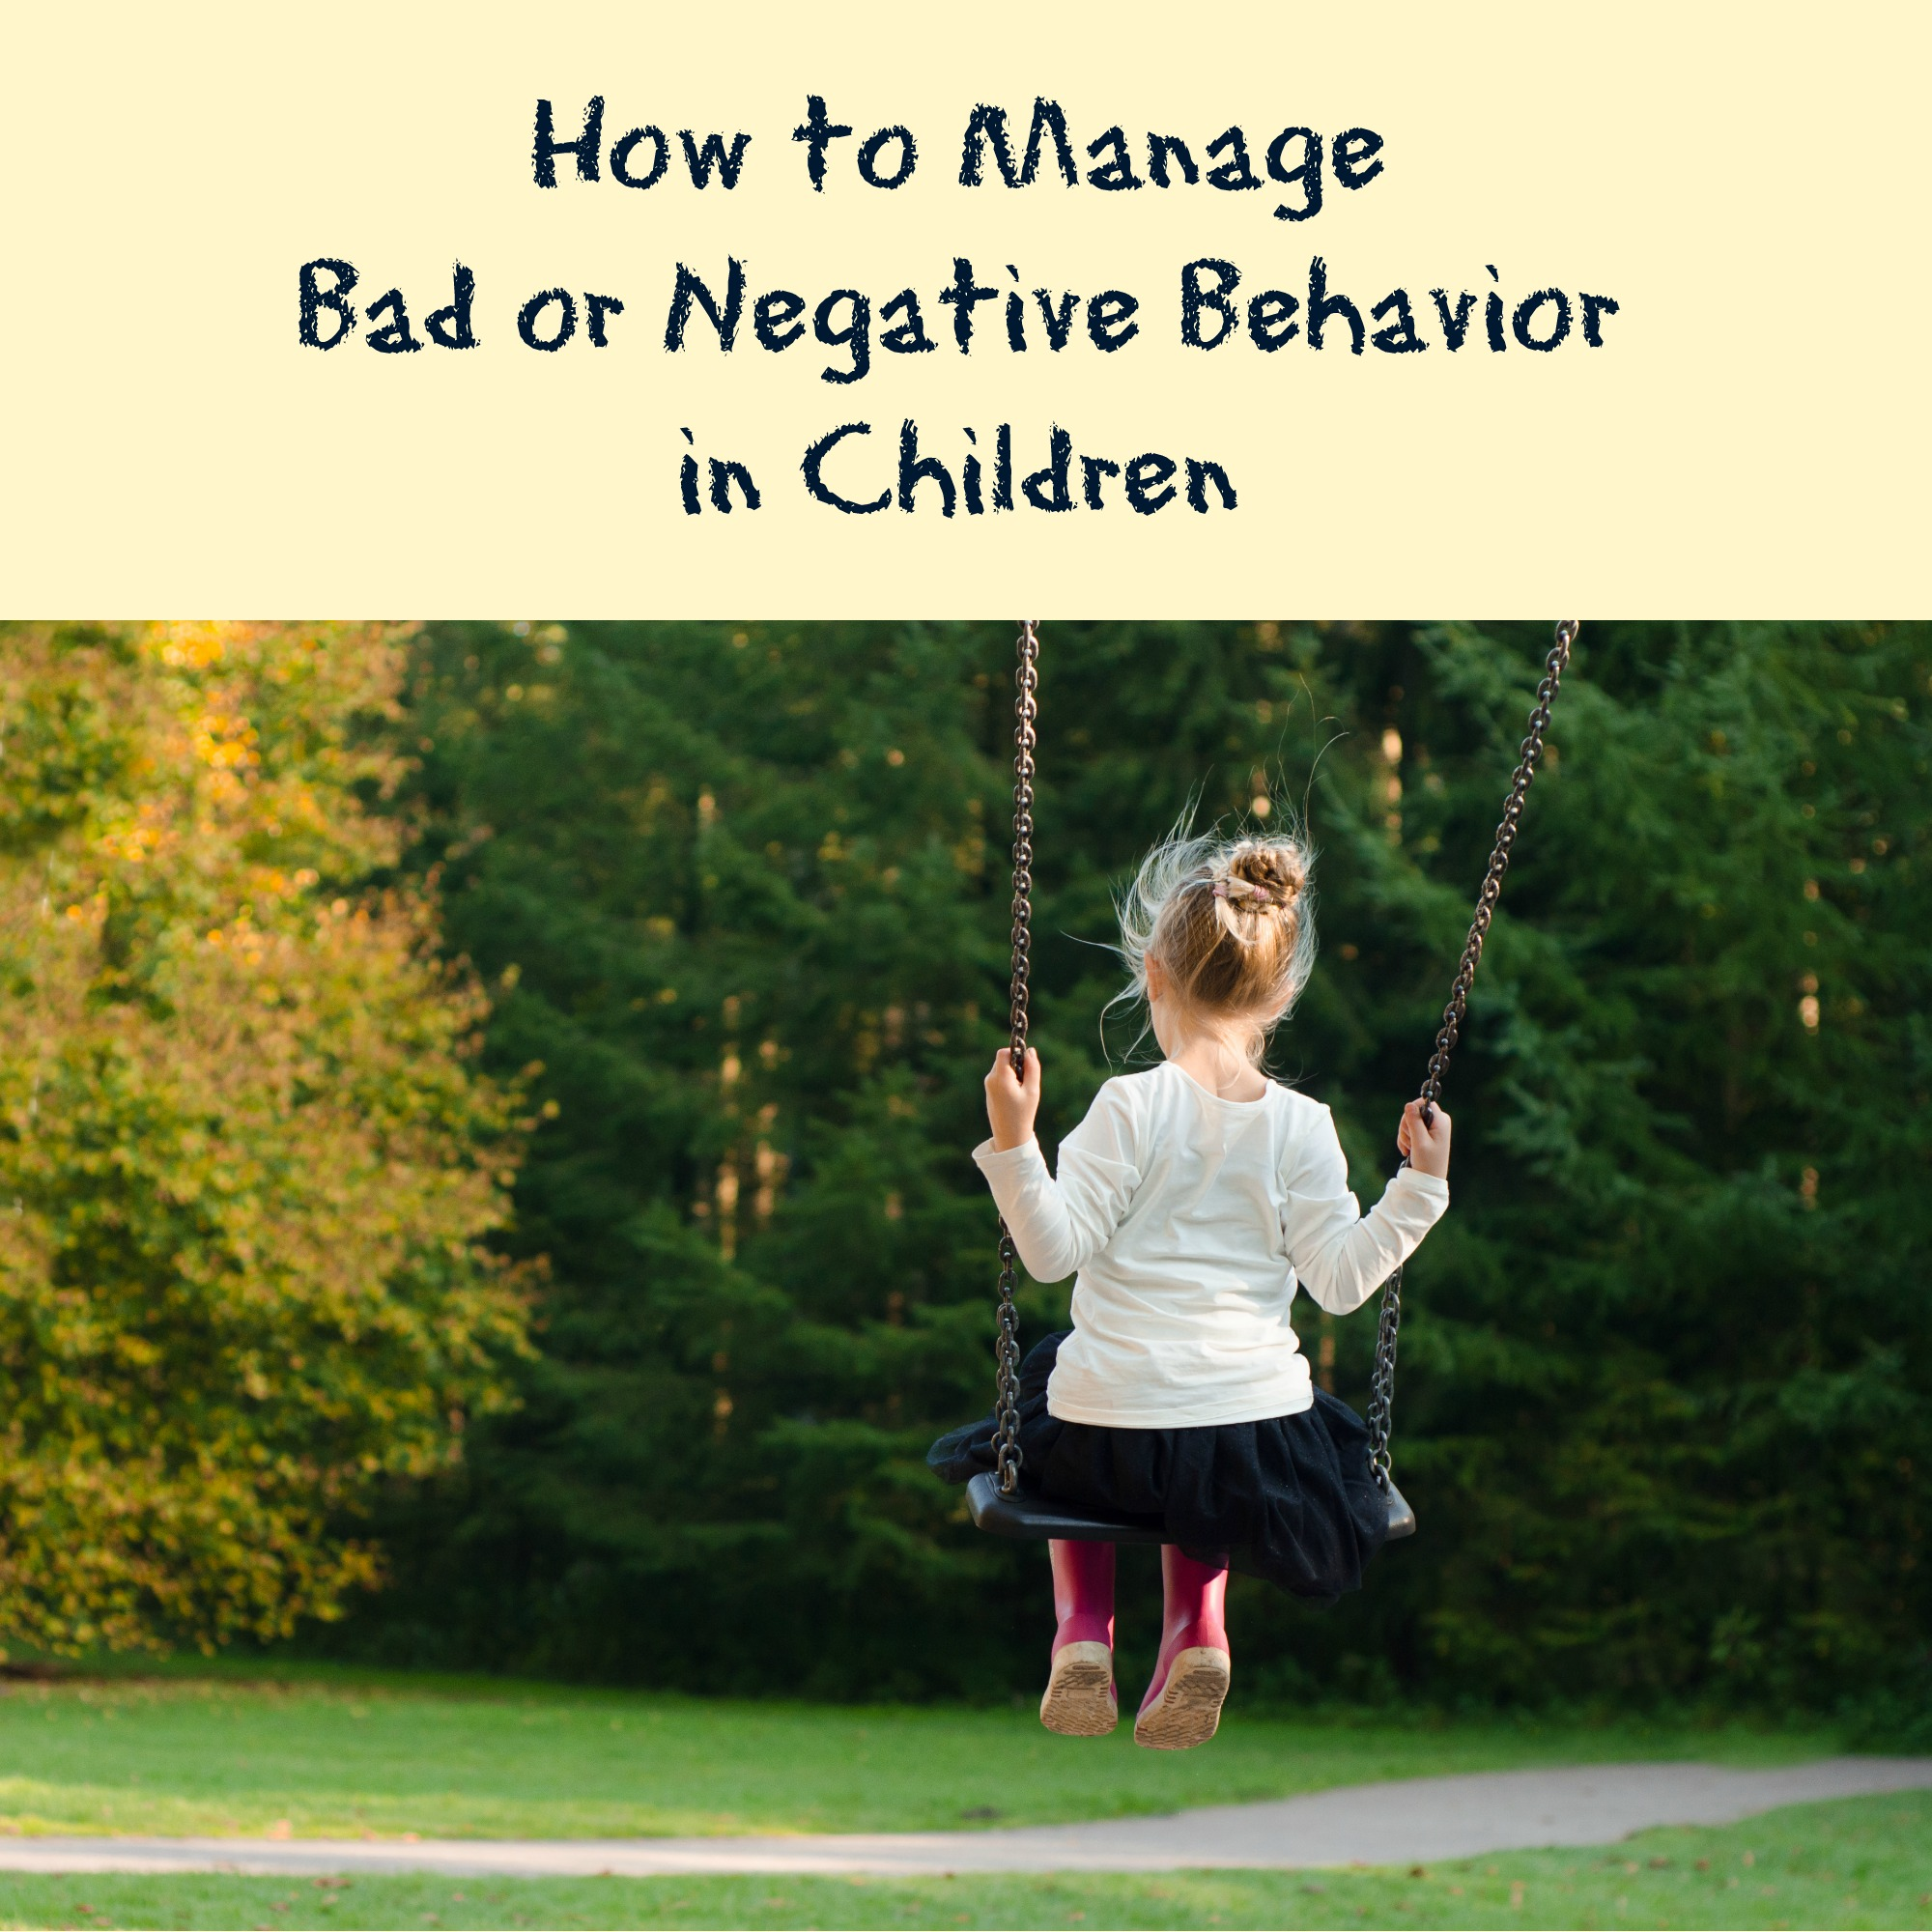 How to Manage Bad or Negative Behavior in Children